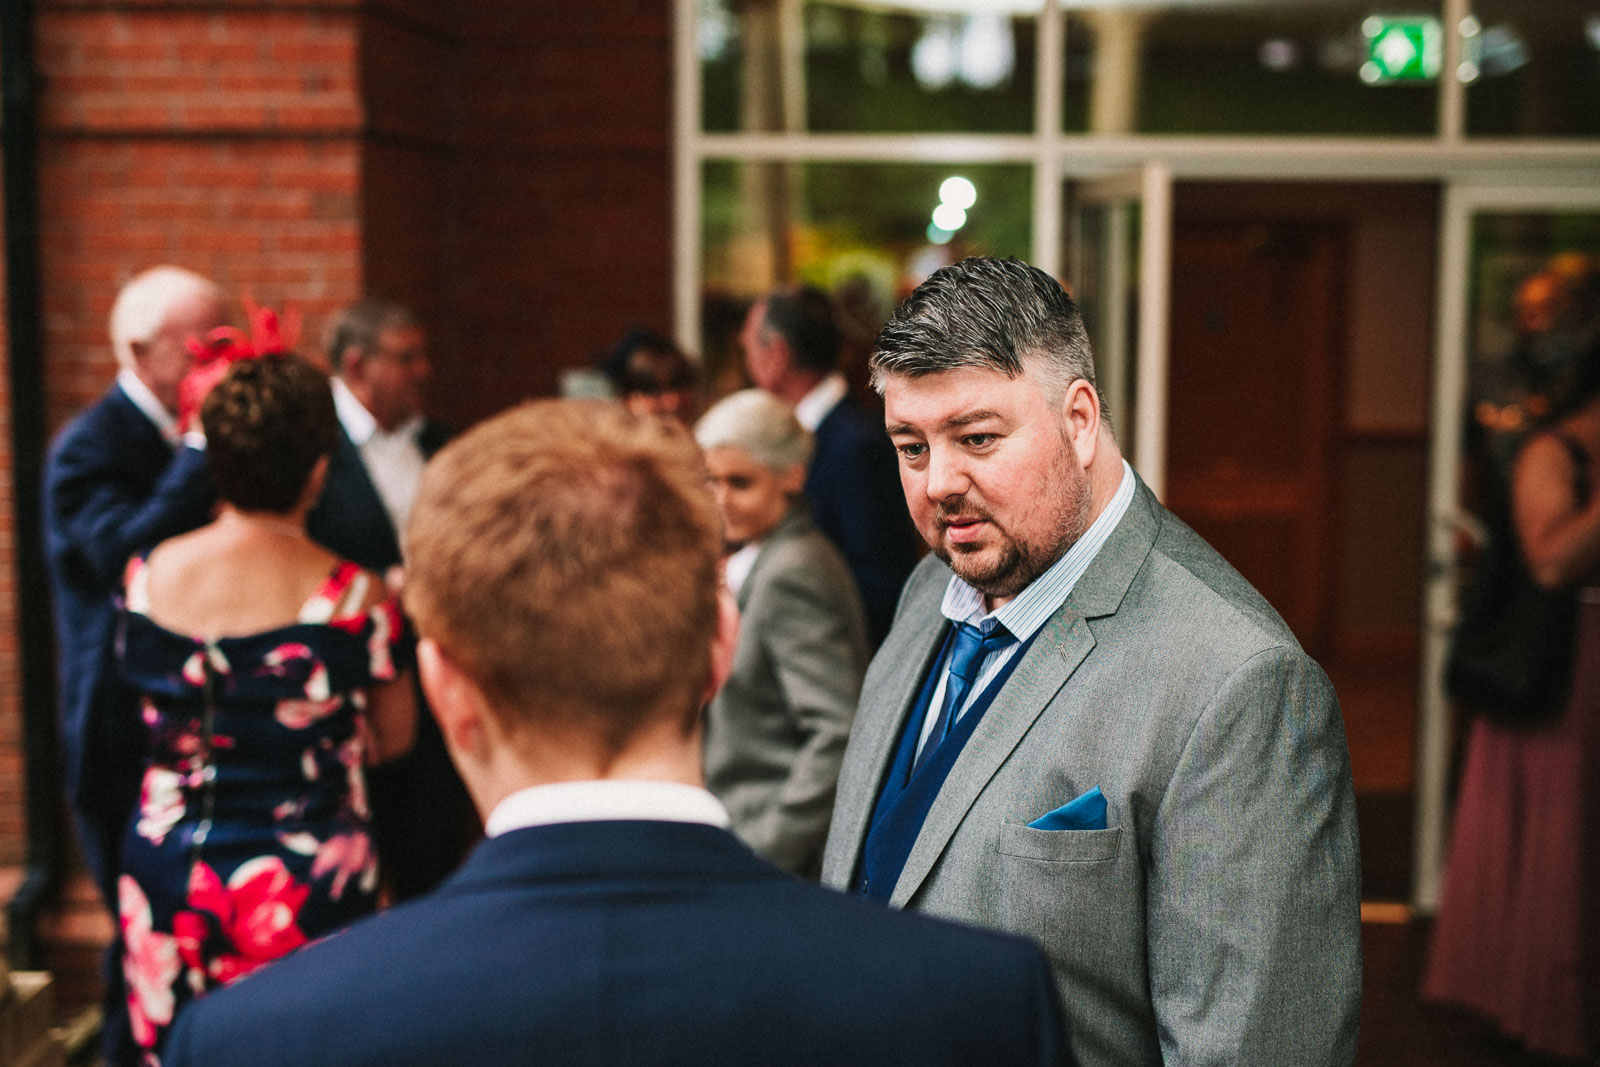 kilhey-court-hotel-wedding-94